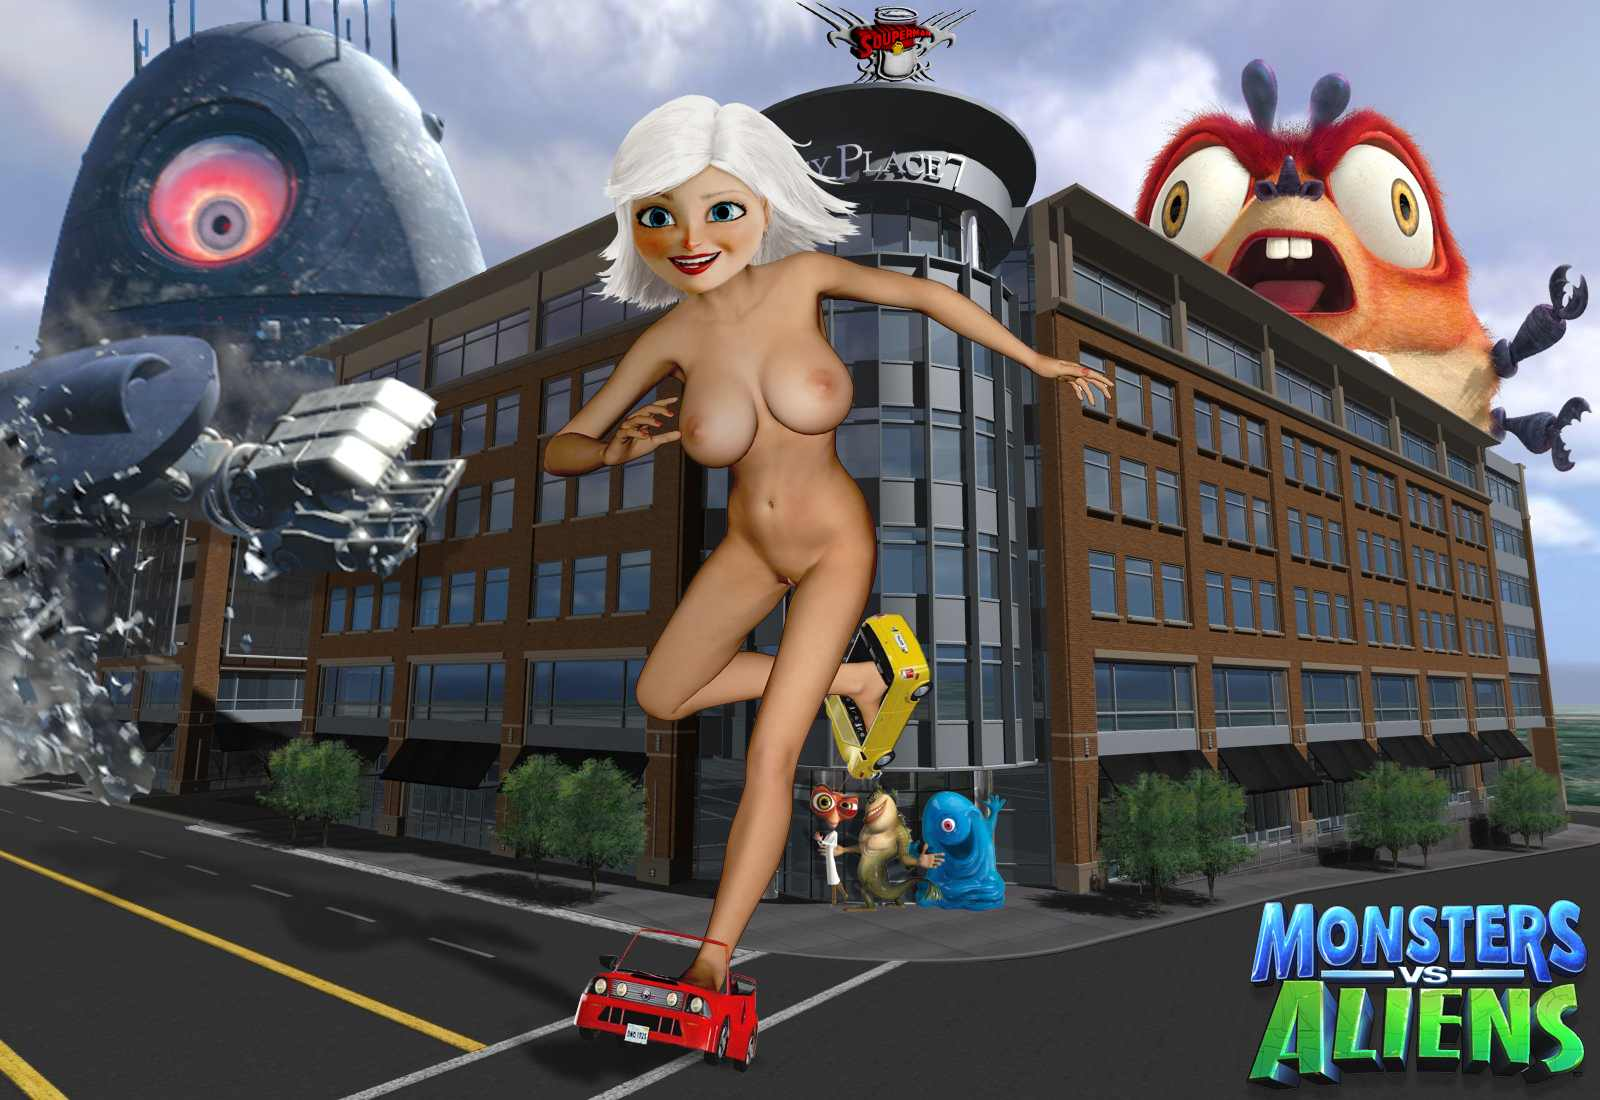 Monsters vs aliens porno images xxx clips